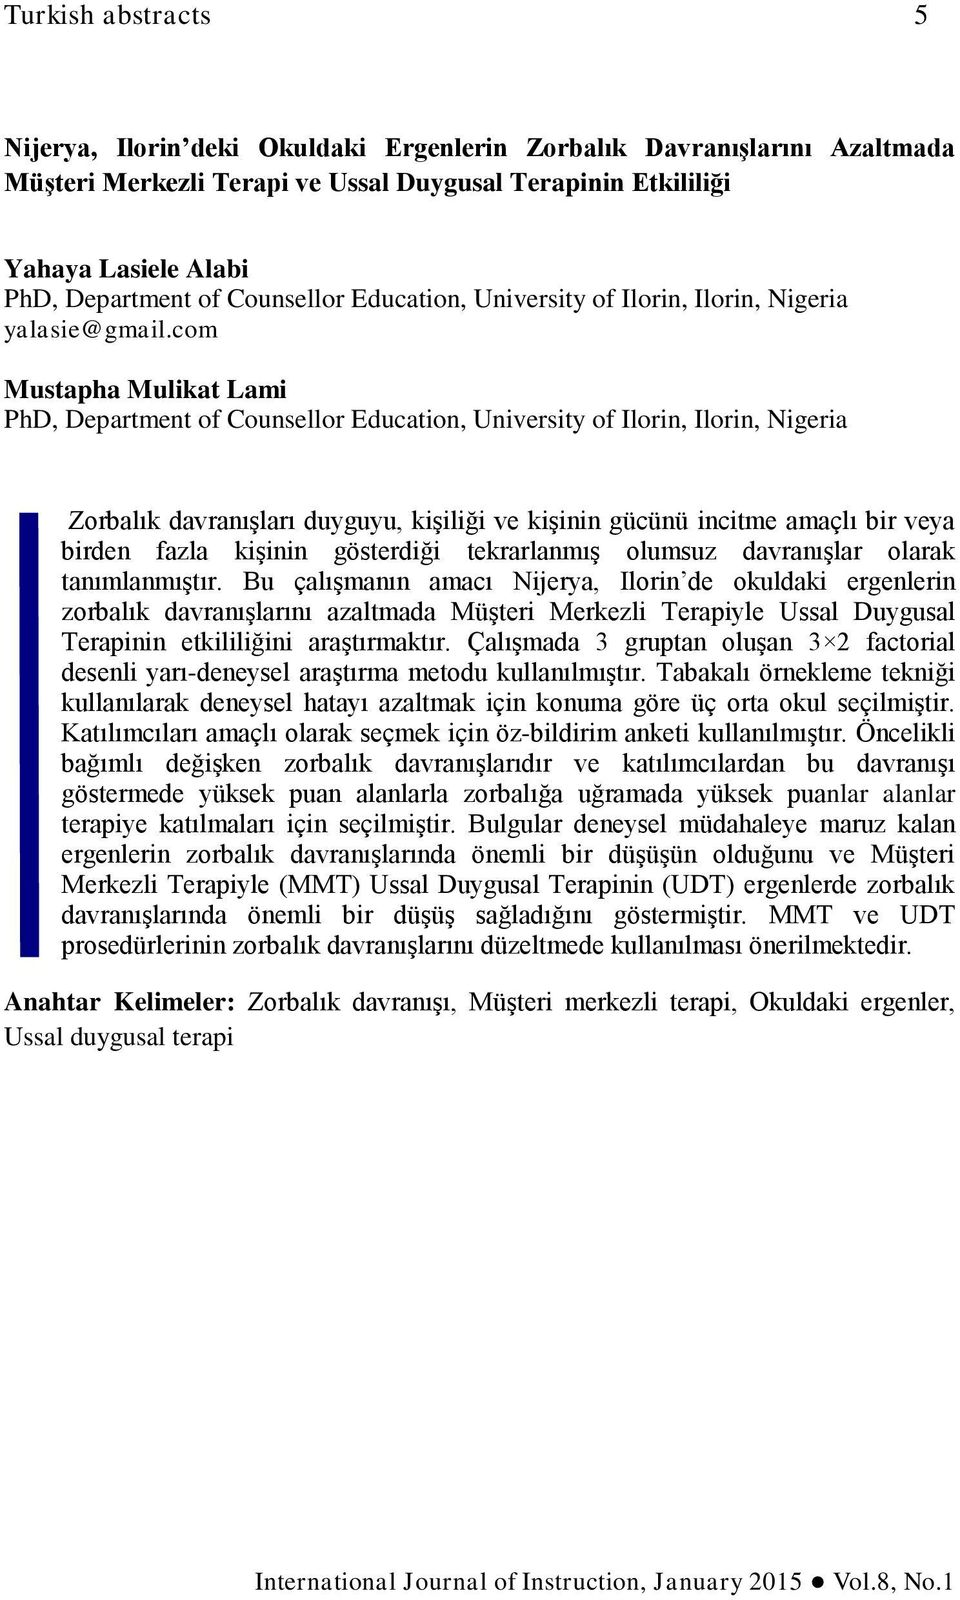 com Mustapha Mulikat Lami PhD, Department of Counsellor Education, University of Ilorin, Ilorin, Nigeria Zorbalık davranışları duyguyu, kişiliği ve kişinin gücünü incitme amaçlı bir veya birden fazla